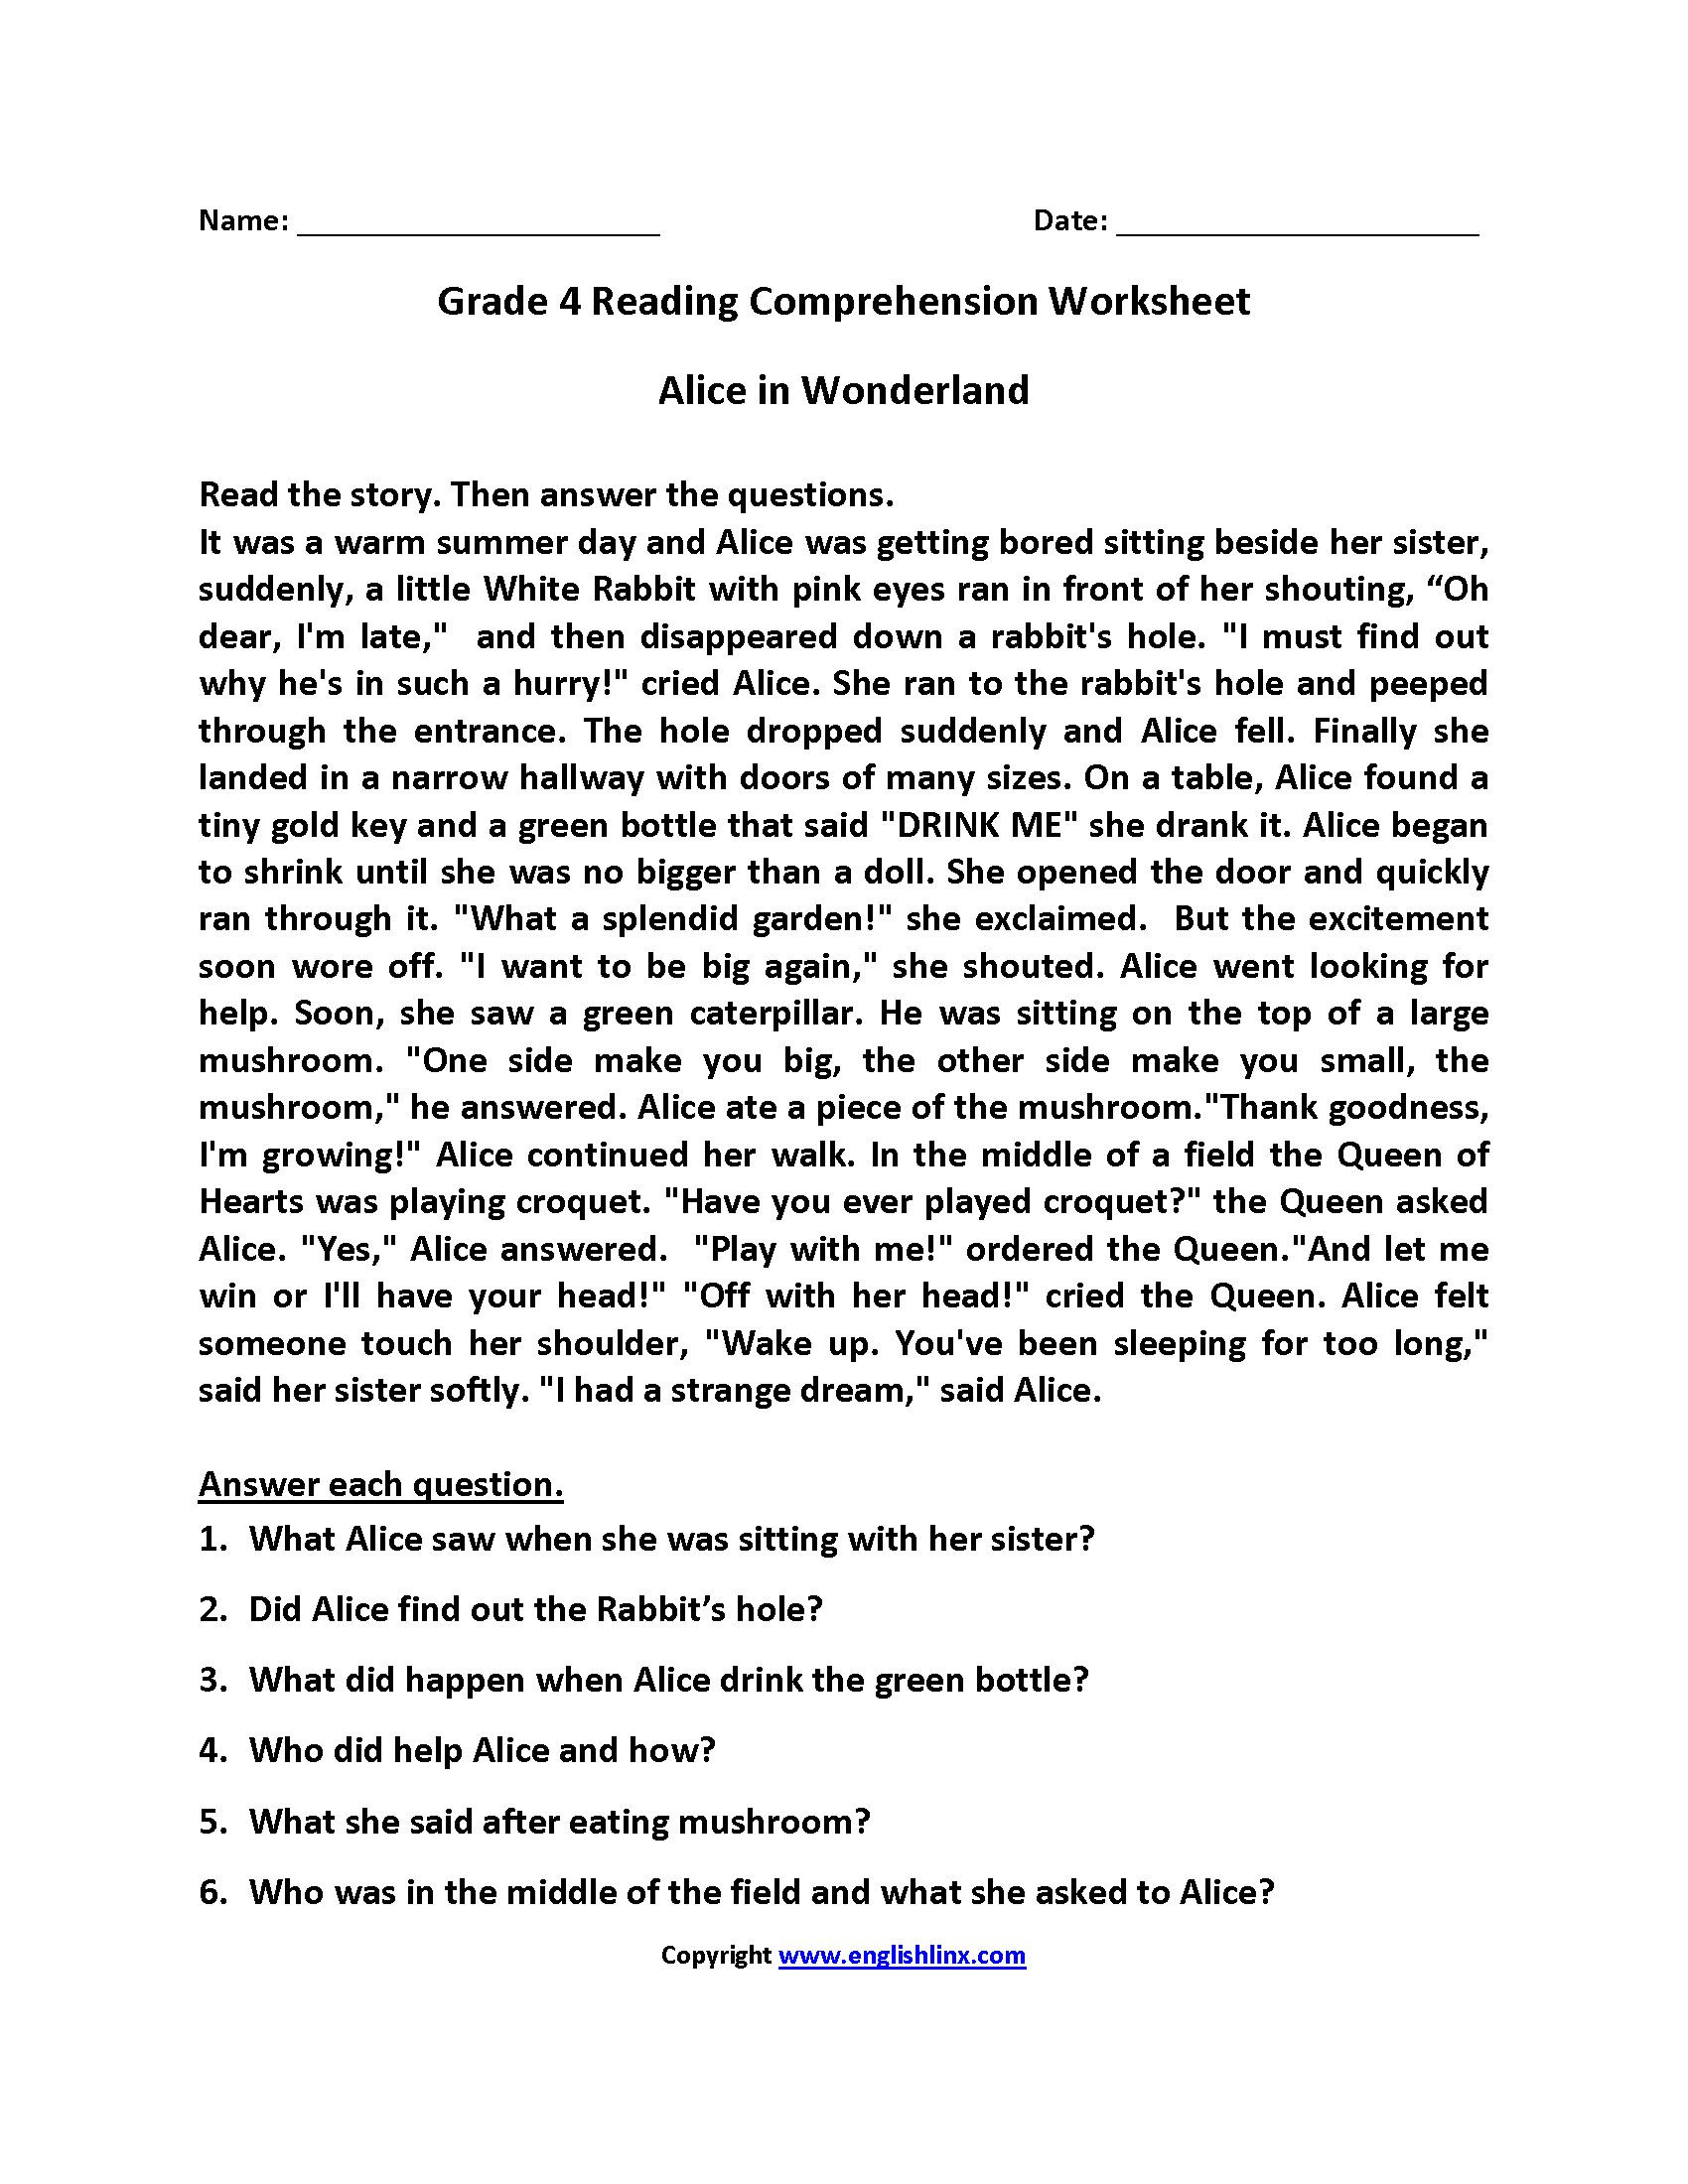 Inference Worksheets 4th Grade Pdf 4th Grade Reading Prehension Worksheets Pdf In 2020